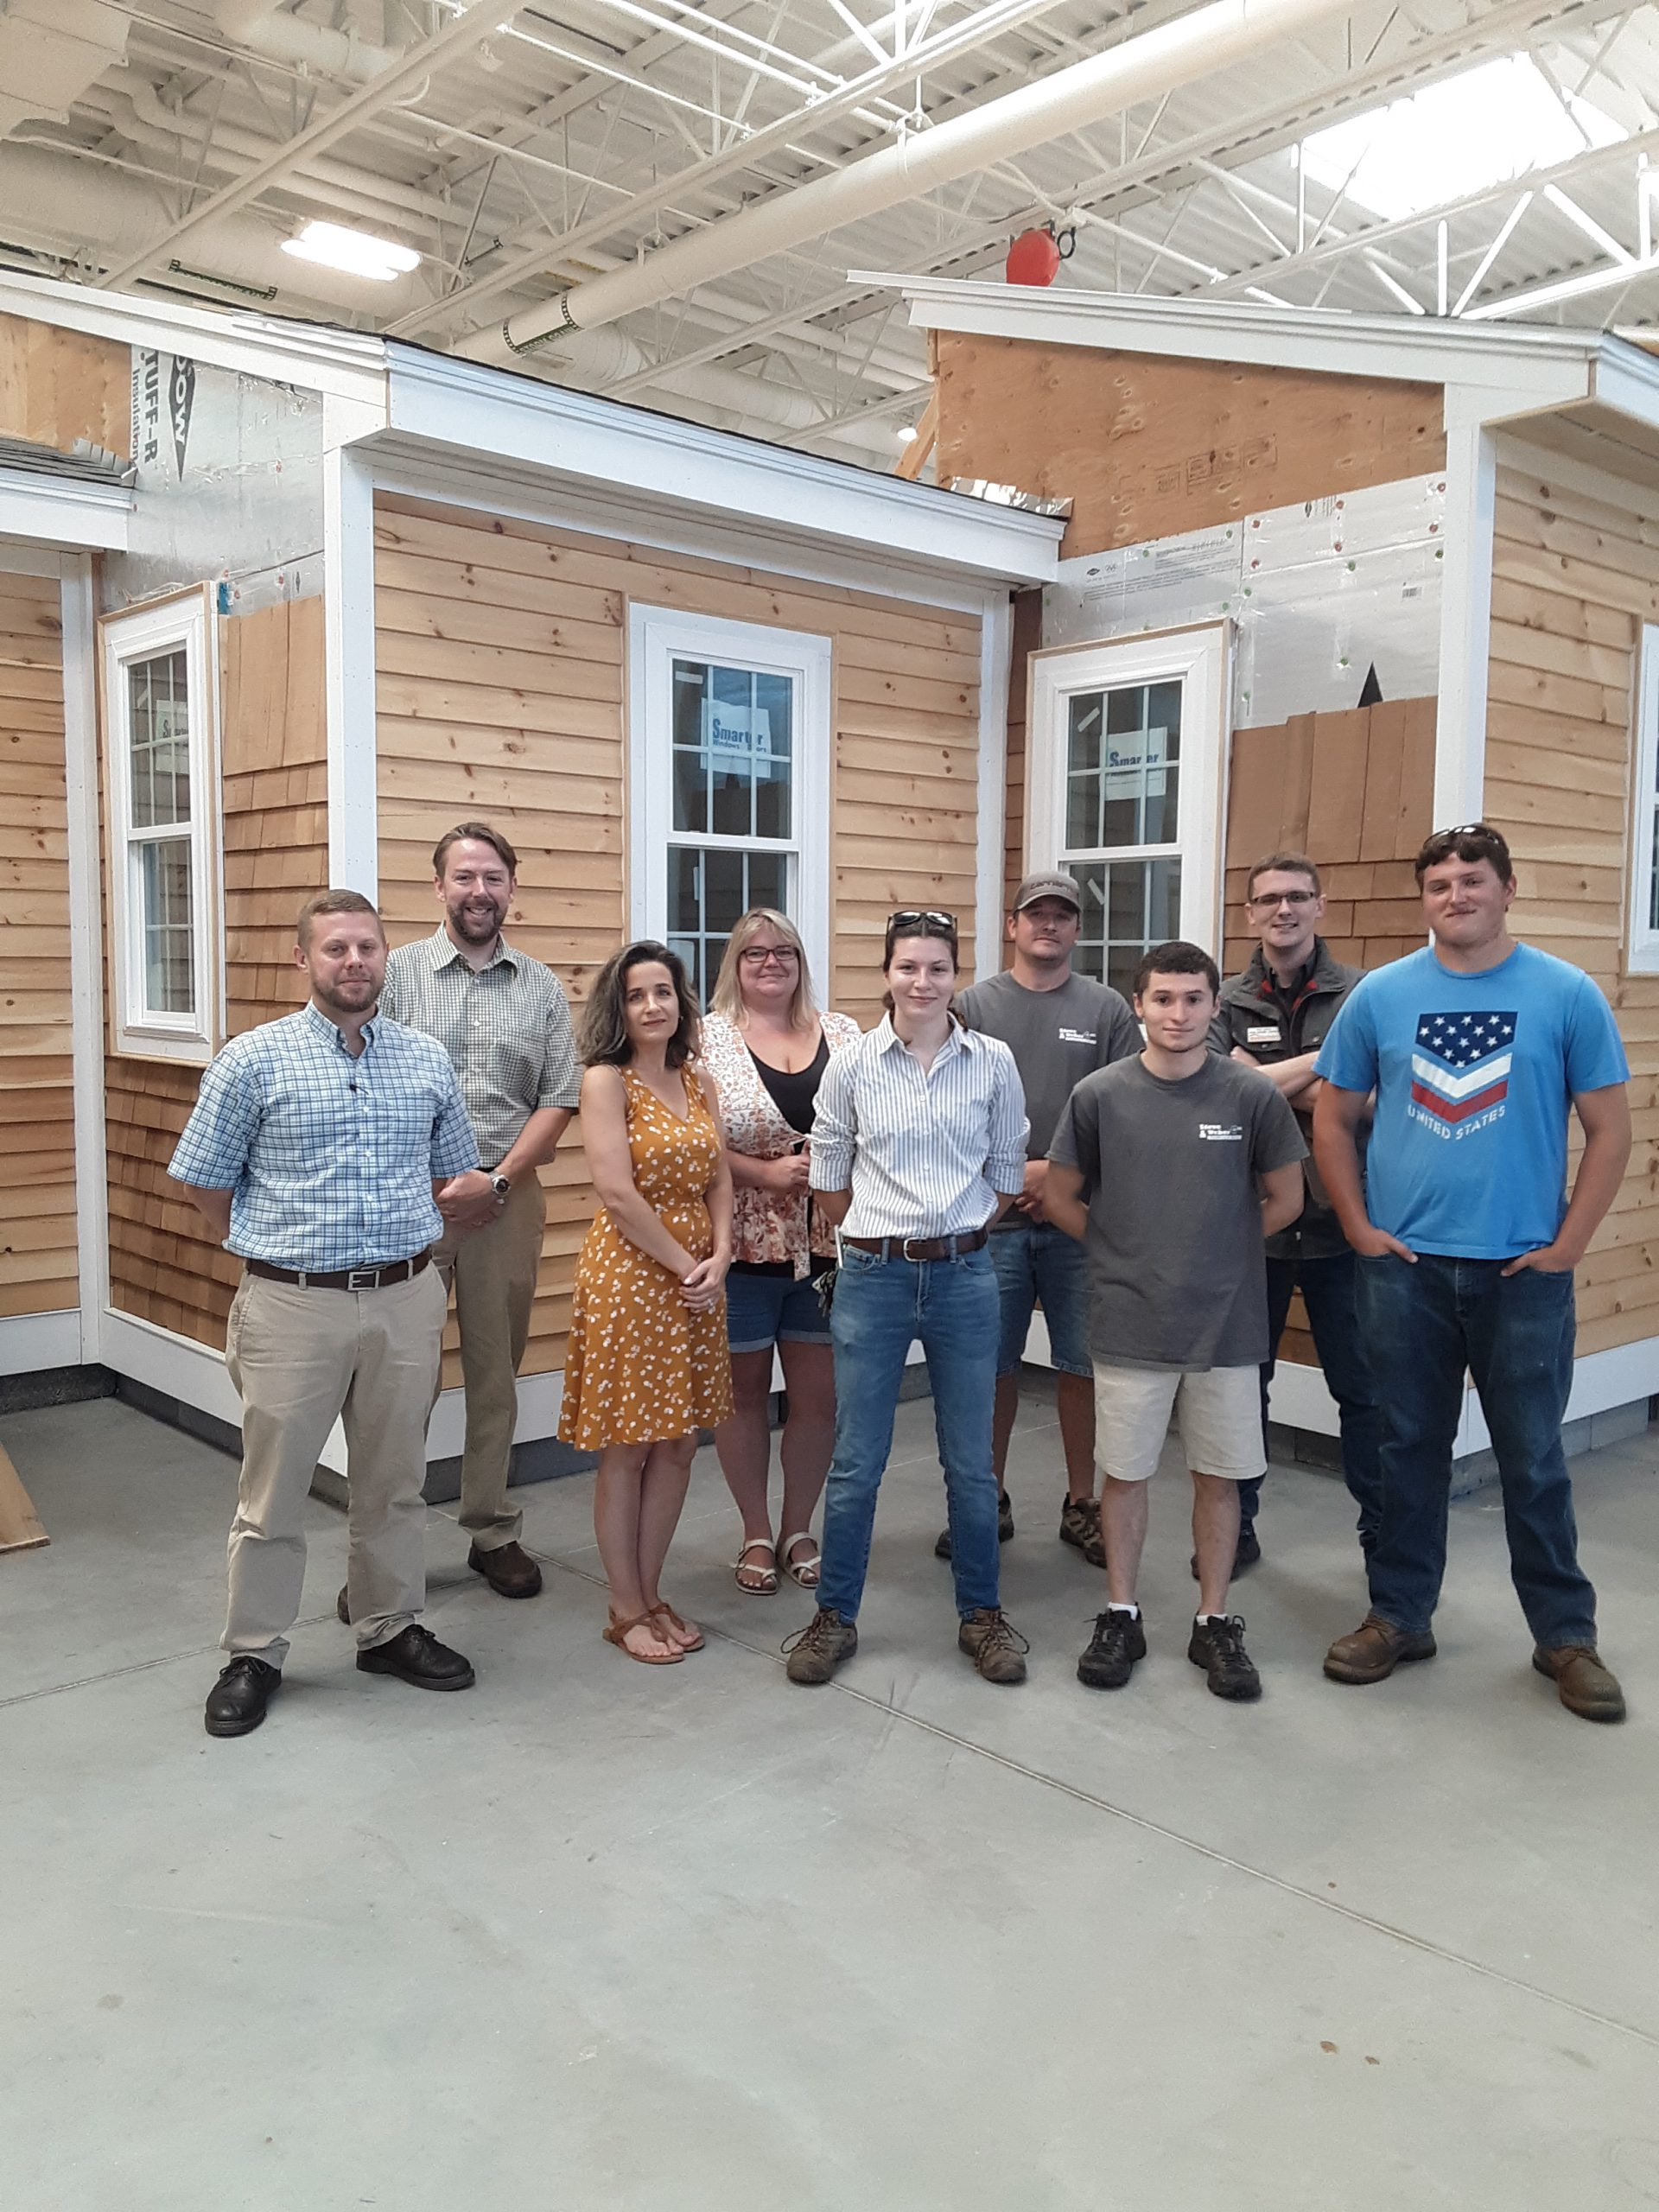 A group of nine people standing in front of a wood structure under construction